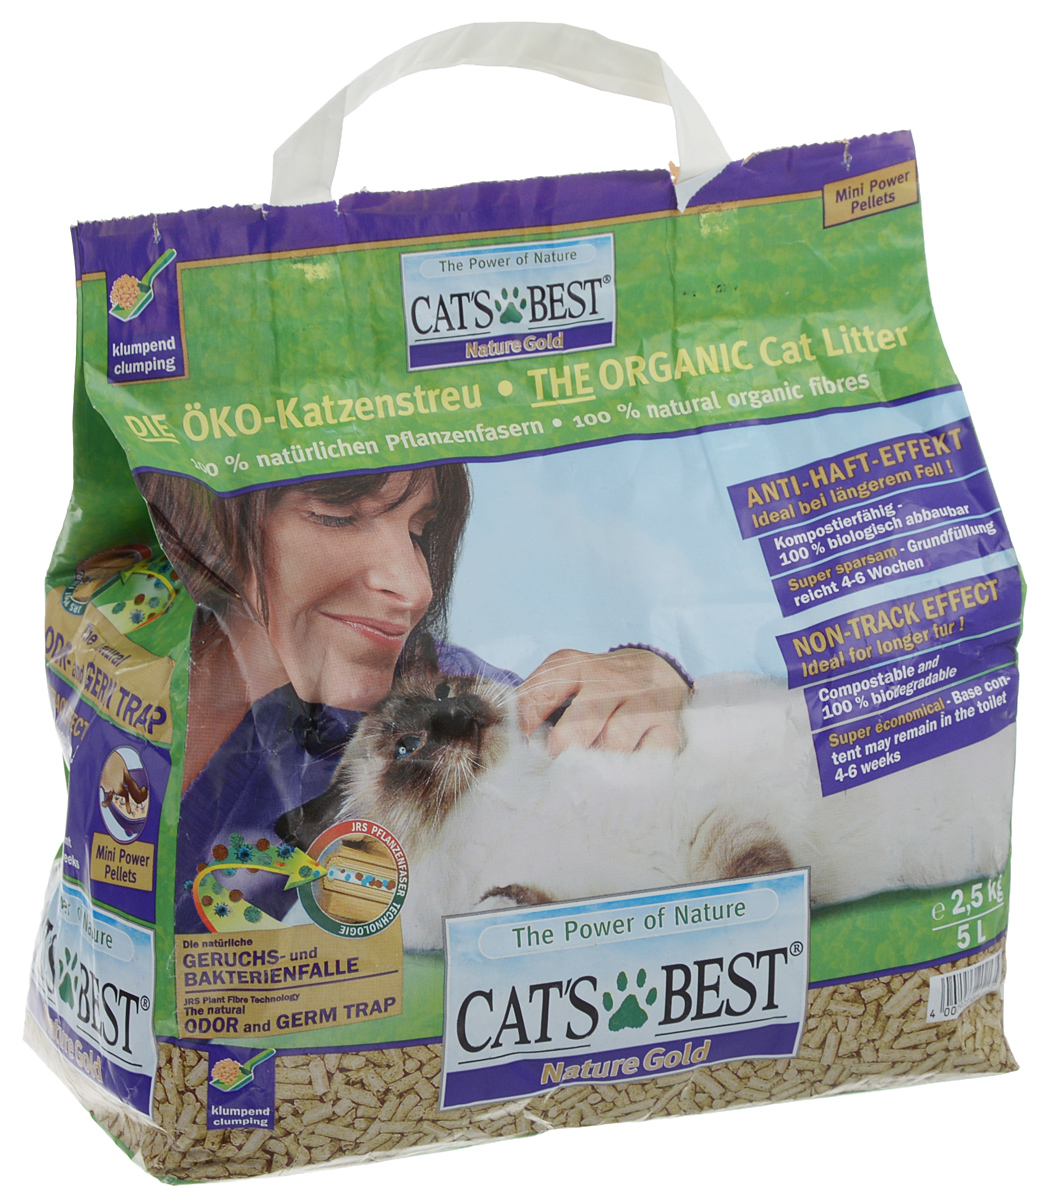 Наполнитель для кошачьего туалета Cats Best Nature Gold, древесный, 5 л cat s best nature gold